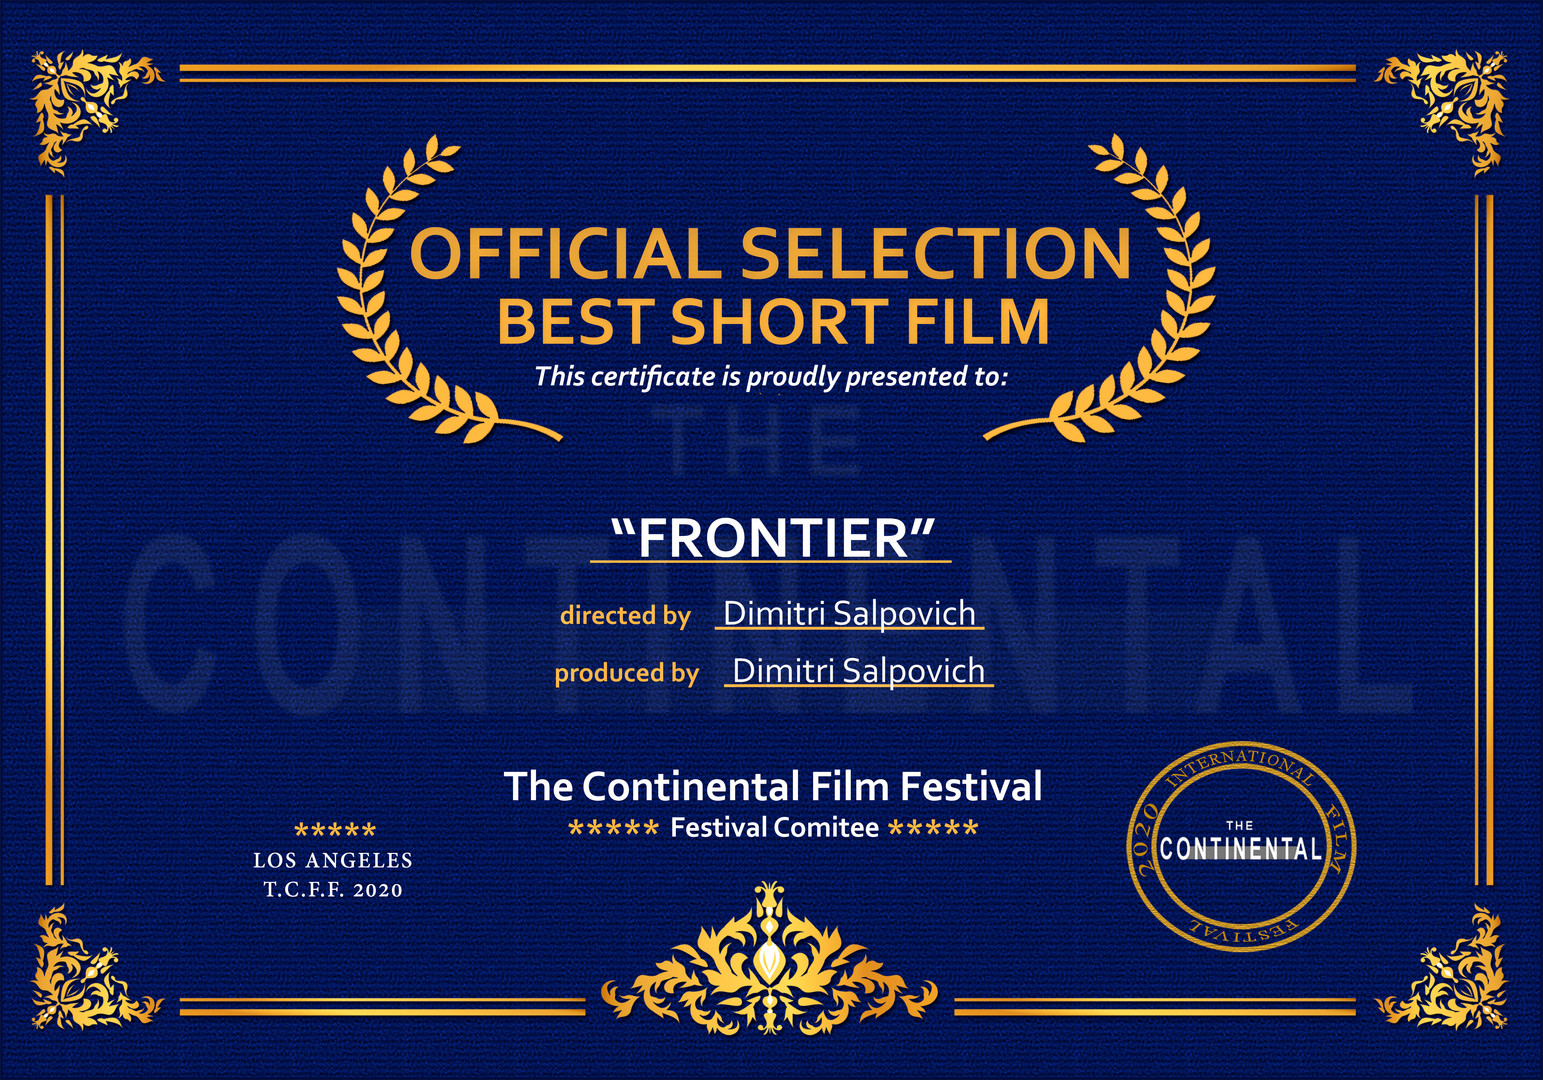 Official Selection Certificate